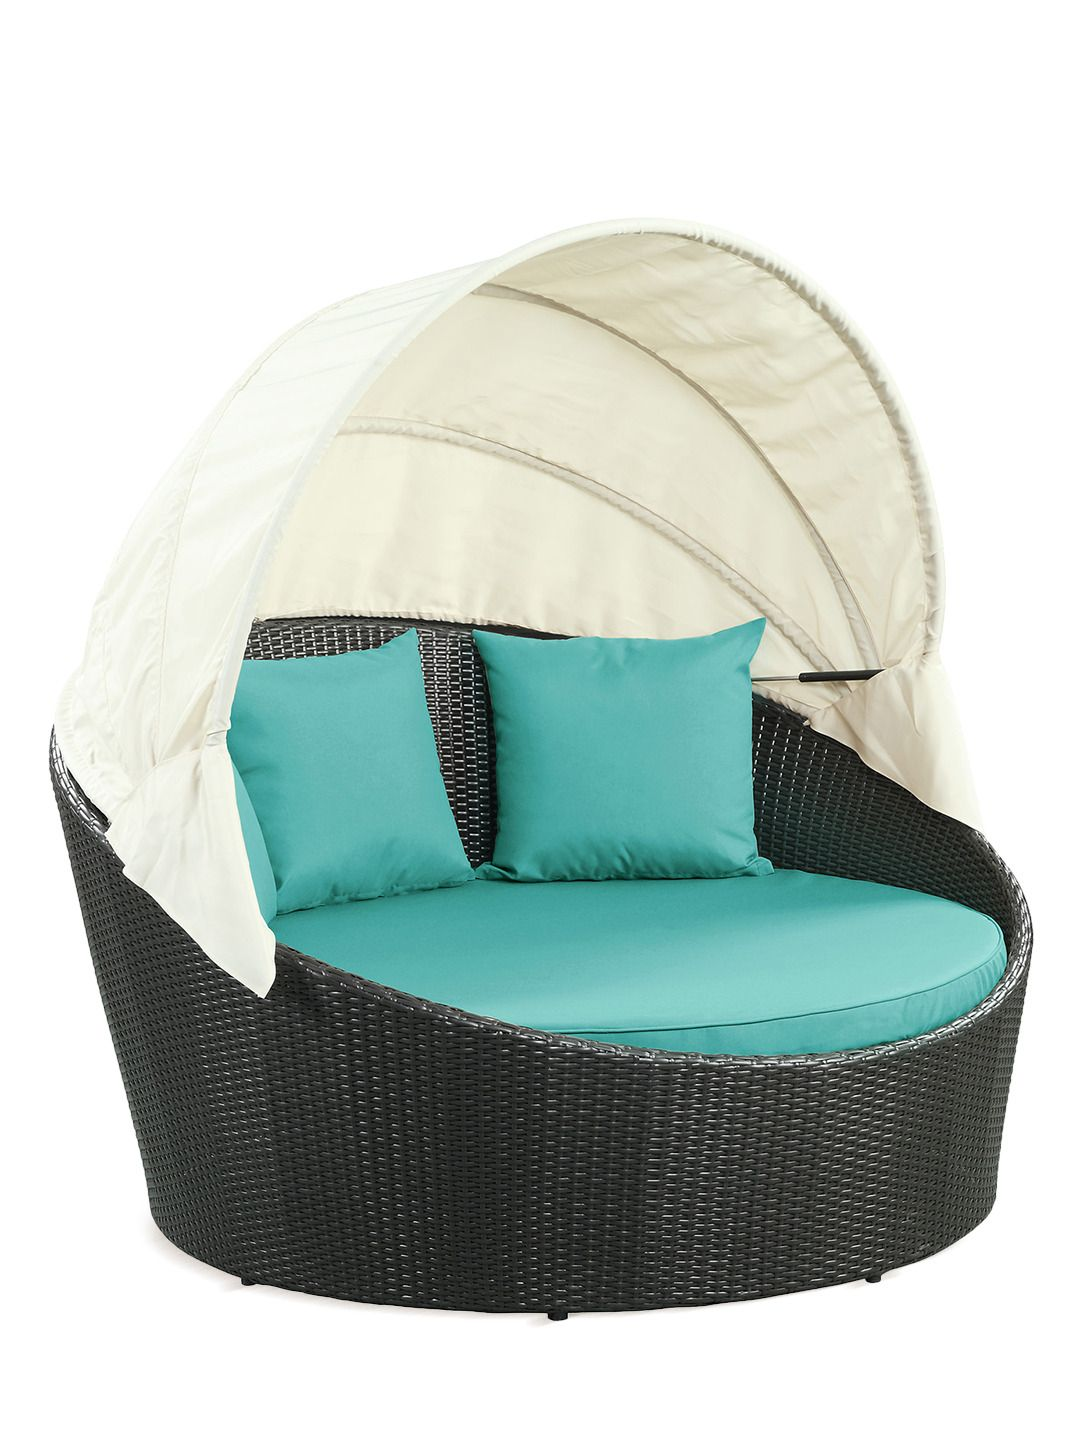 Pearl Daybed Outdoor Canan Outdoor Rattan Canopy Bed More Colors By Pearl River